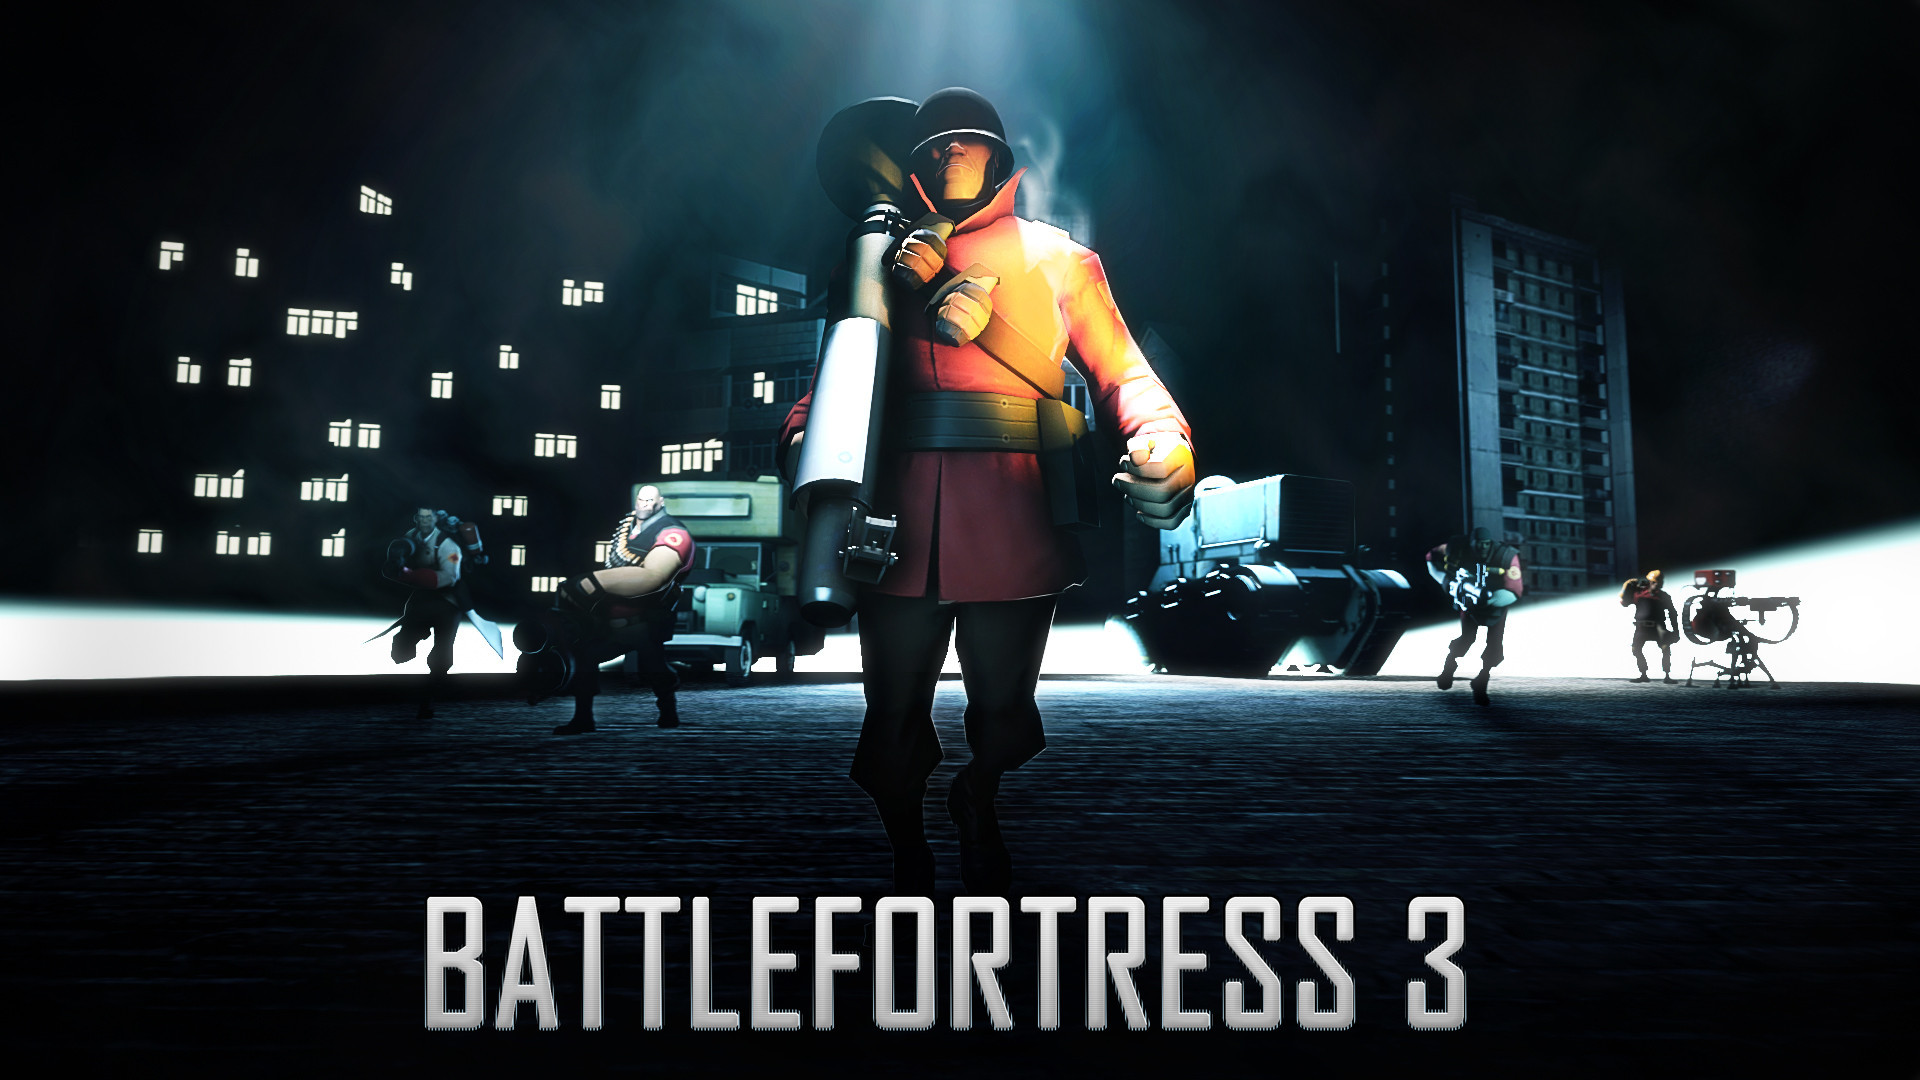 This my another Battlefortress Background. This will be replace basic tf2  background.